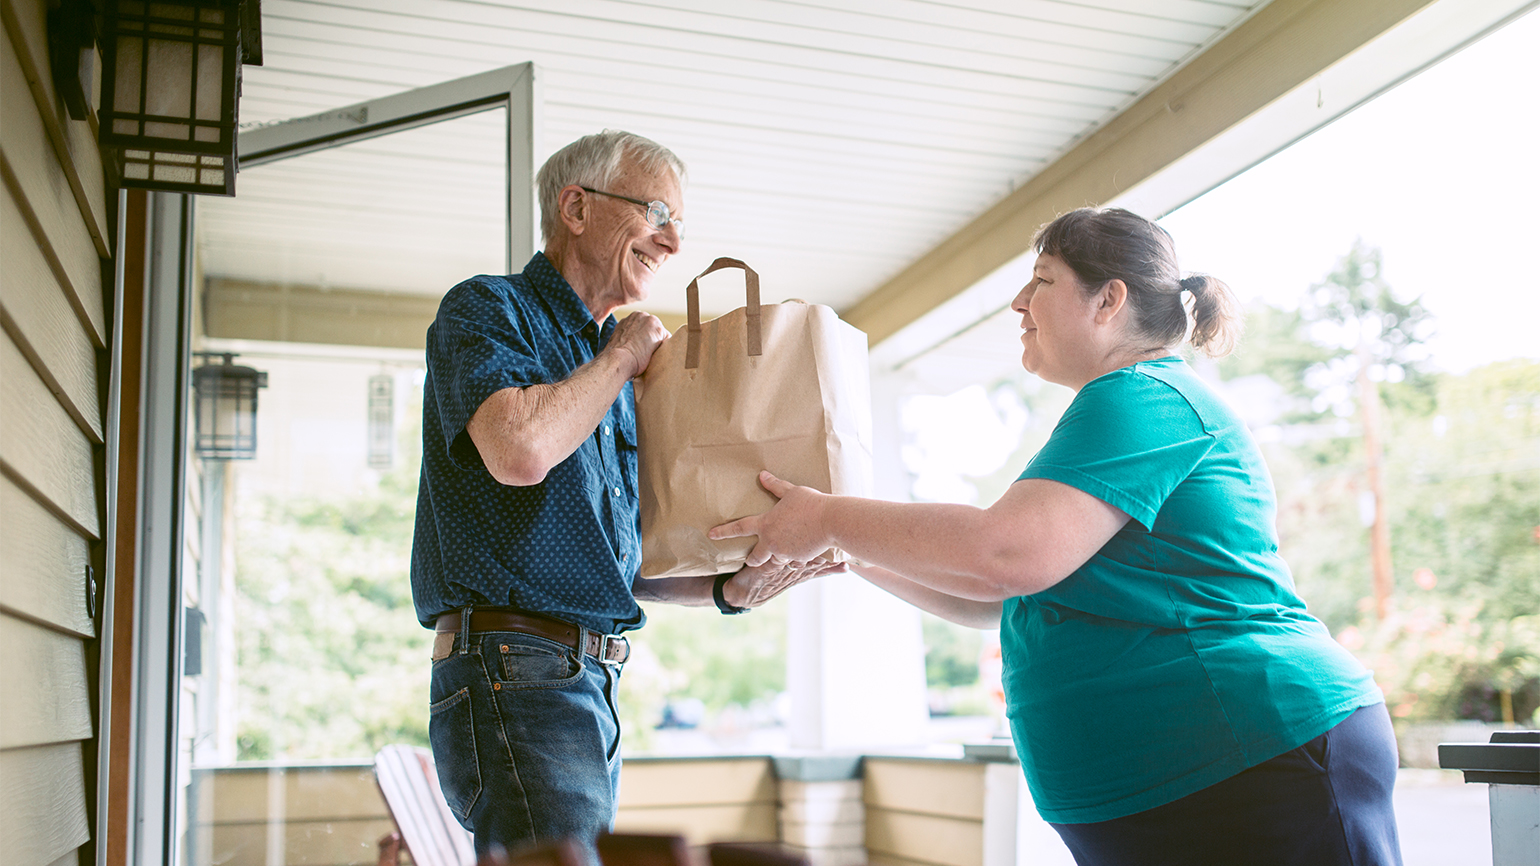 A woman brings food to a senior neighbor